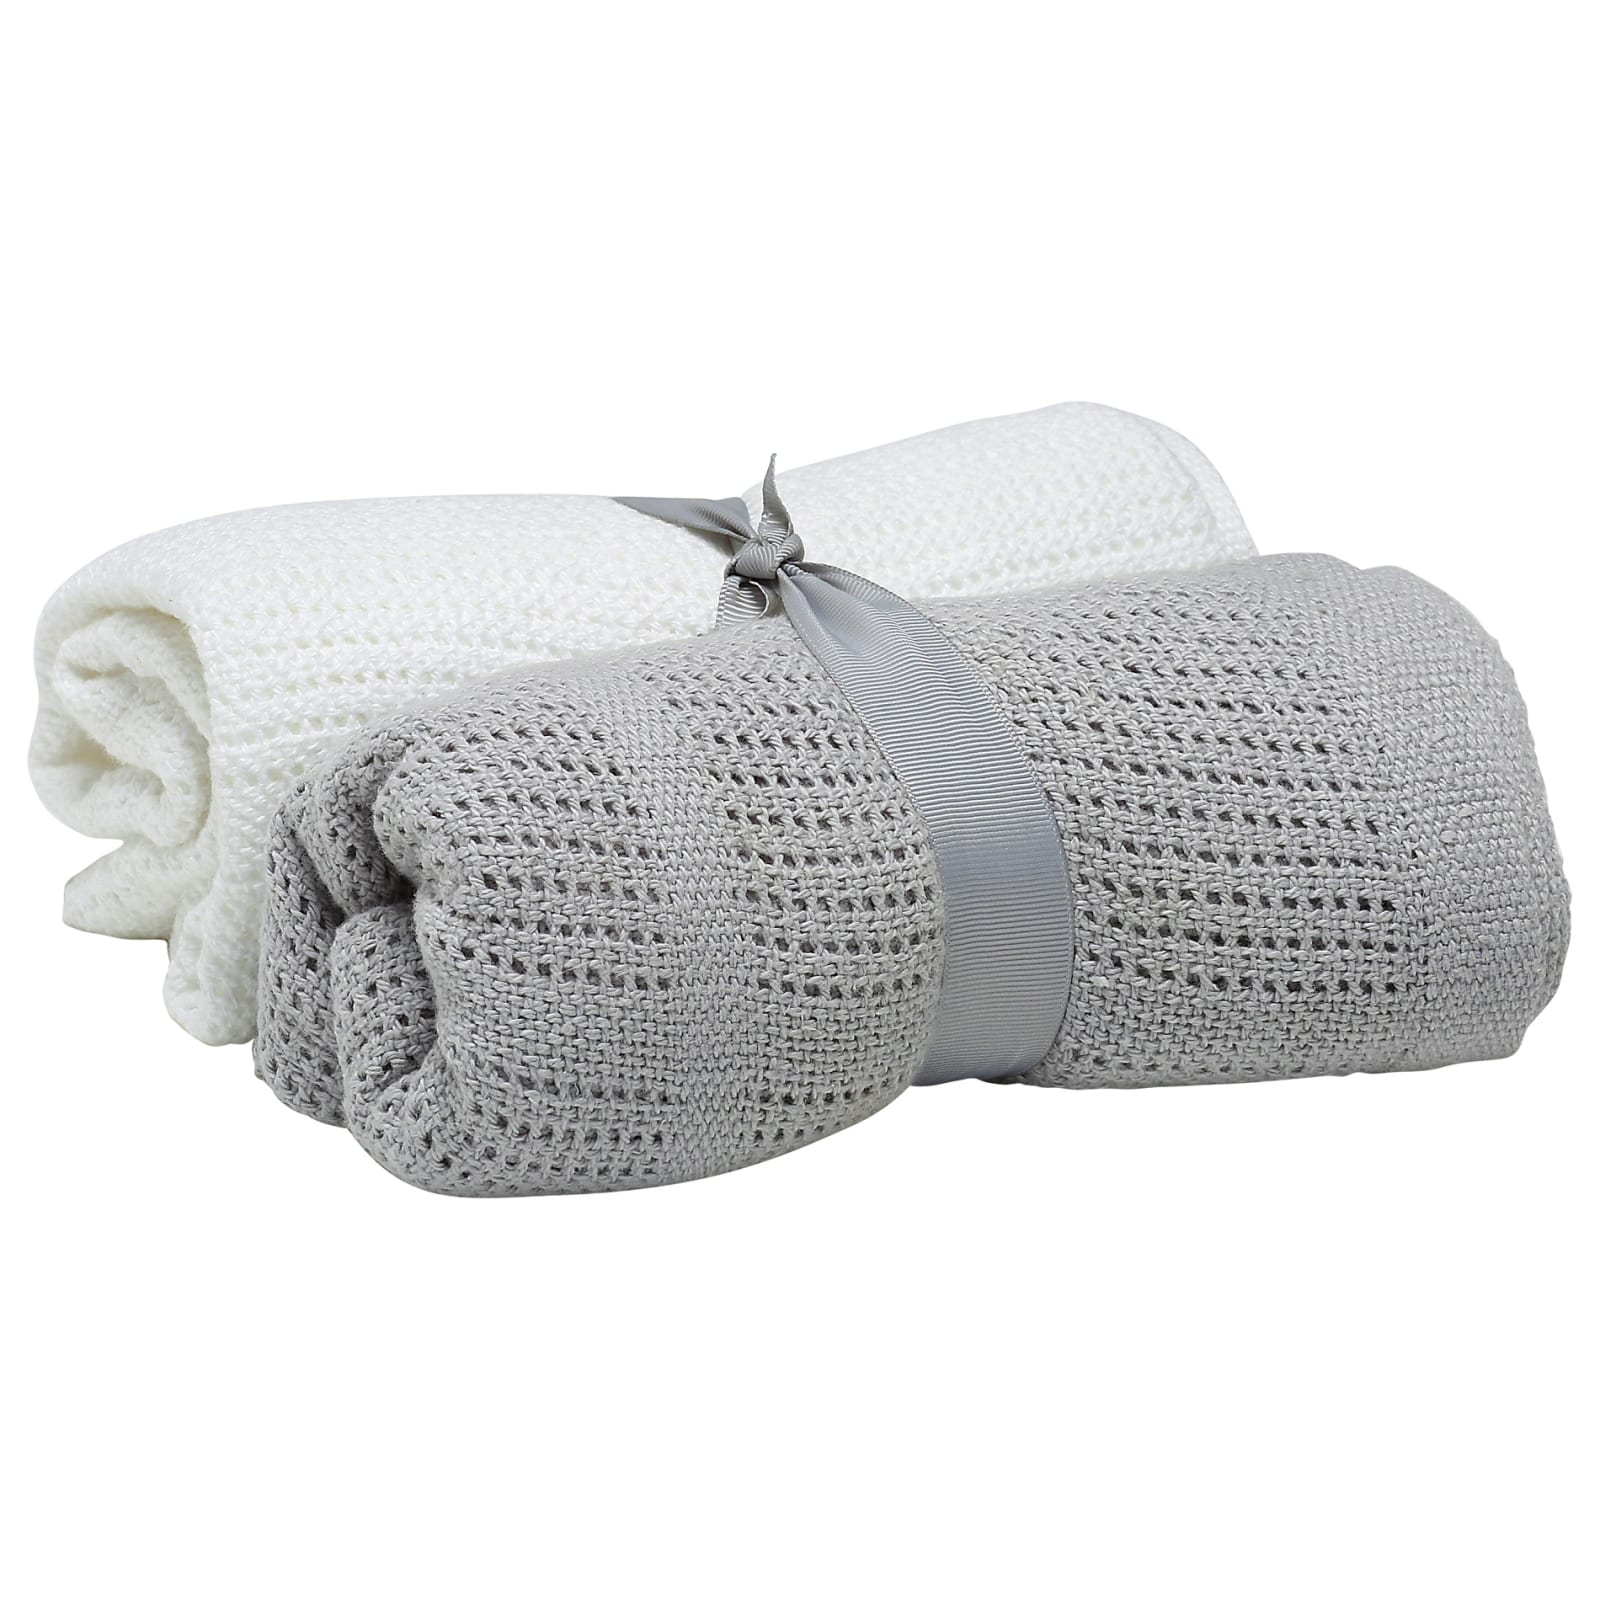 2 Pack Cellular Blanket – Grey and White product image